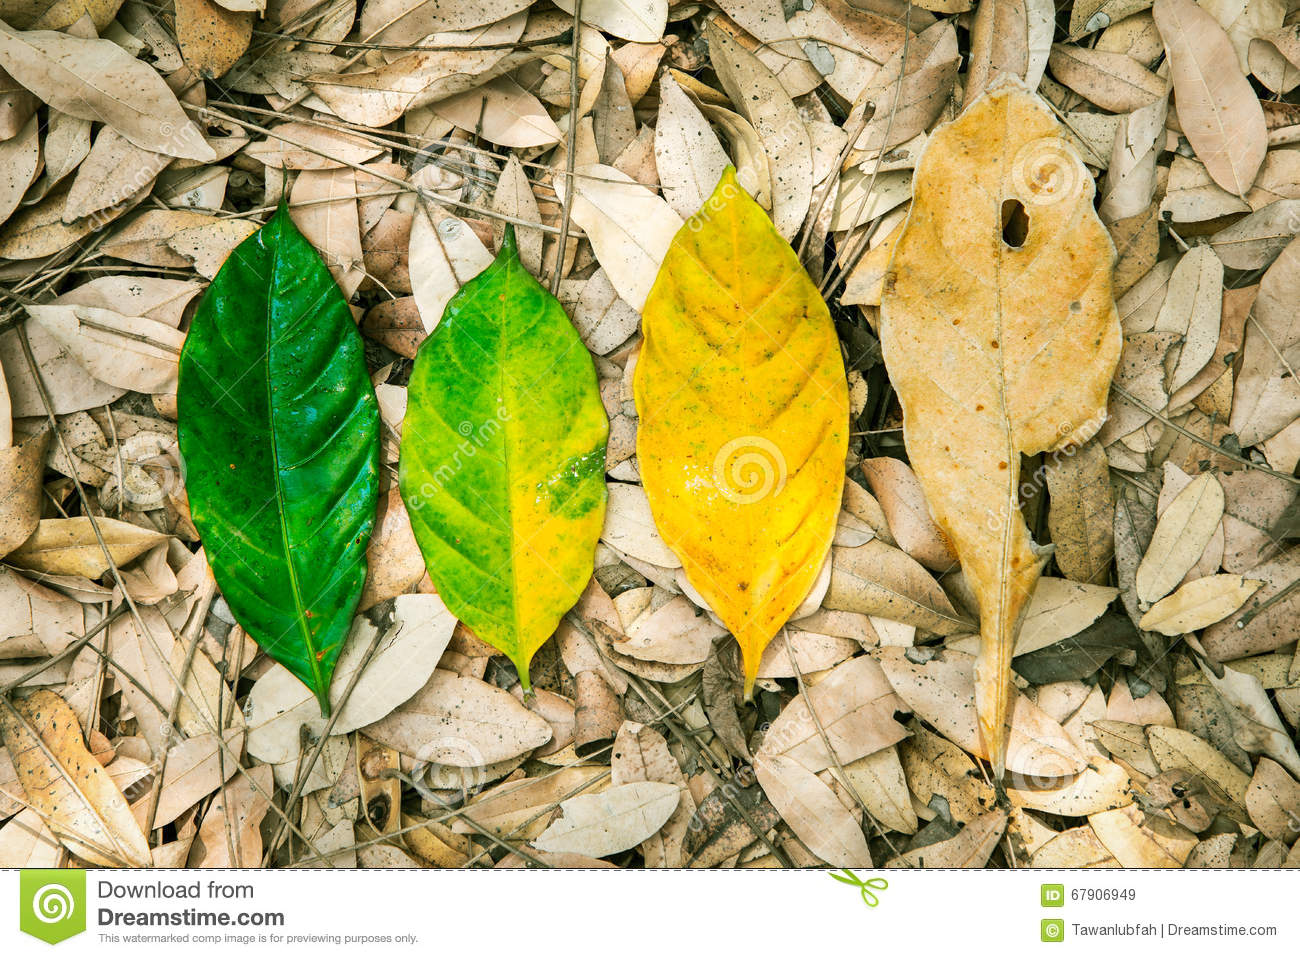 Conceptual of life, cycle of birth and death. Nature fresh leaf